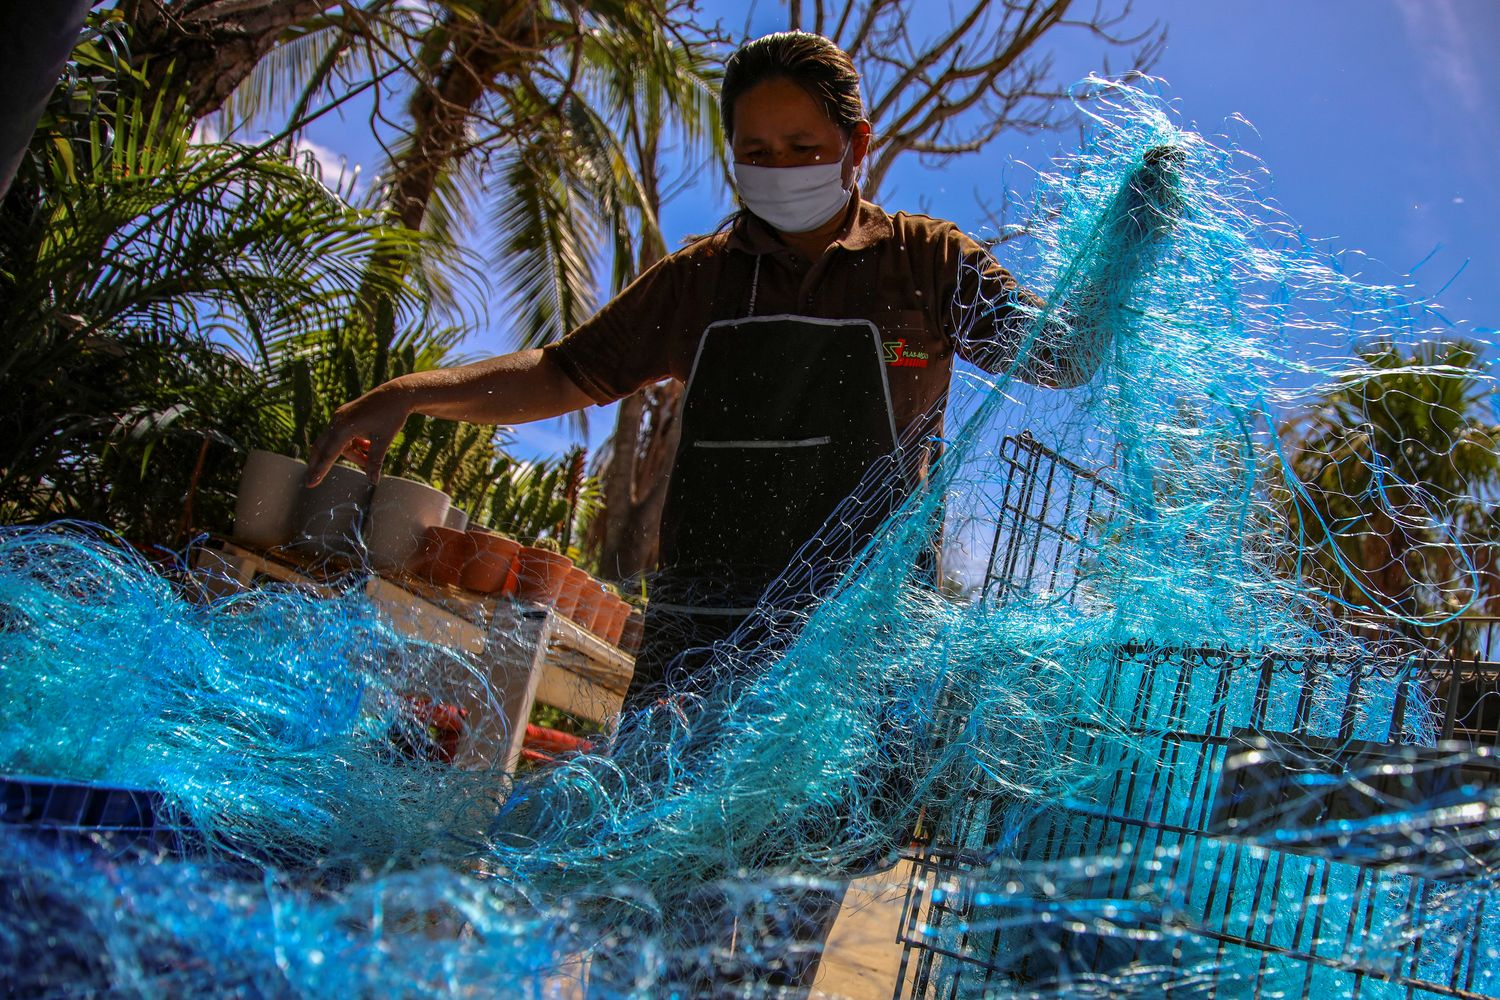 A worker prepares old fishing nets before a recycling process to create, among new products, protective gear against the coronavirus disease at the Saint Louis Plas Mold factory amid the COVID-19 outbreak in Ayutthaya province on Tuesday. (Reuters photo)